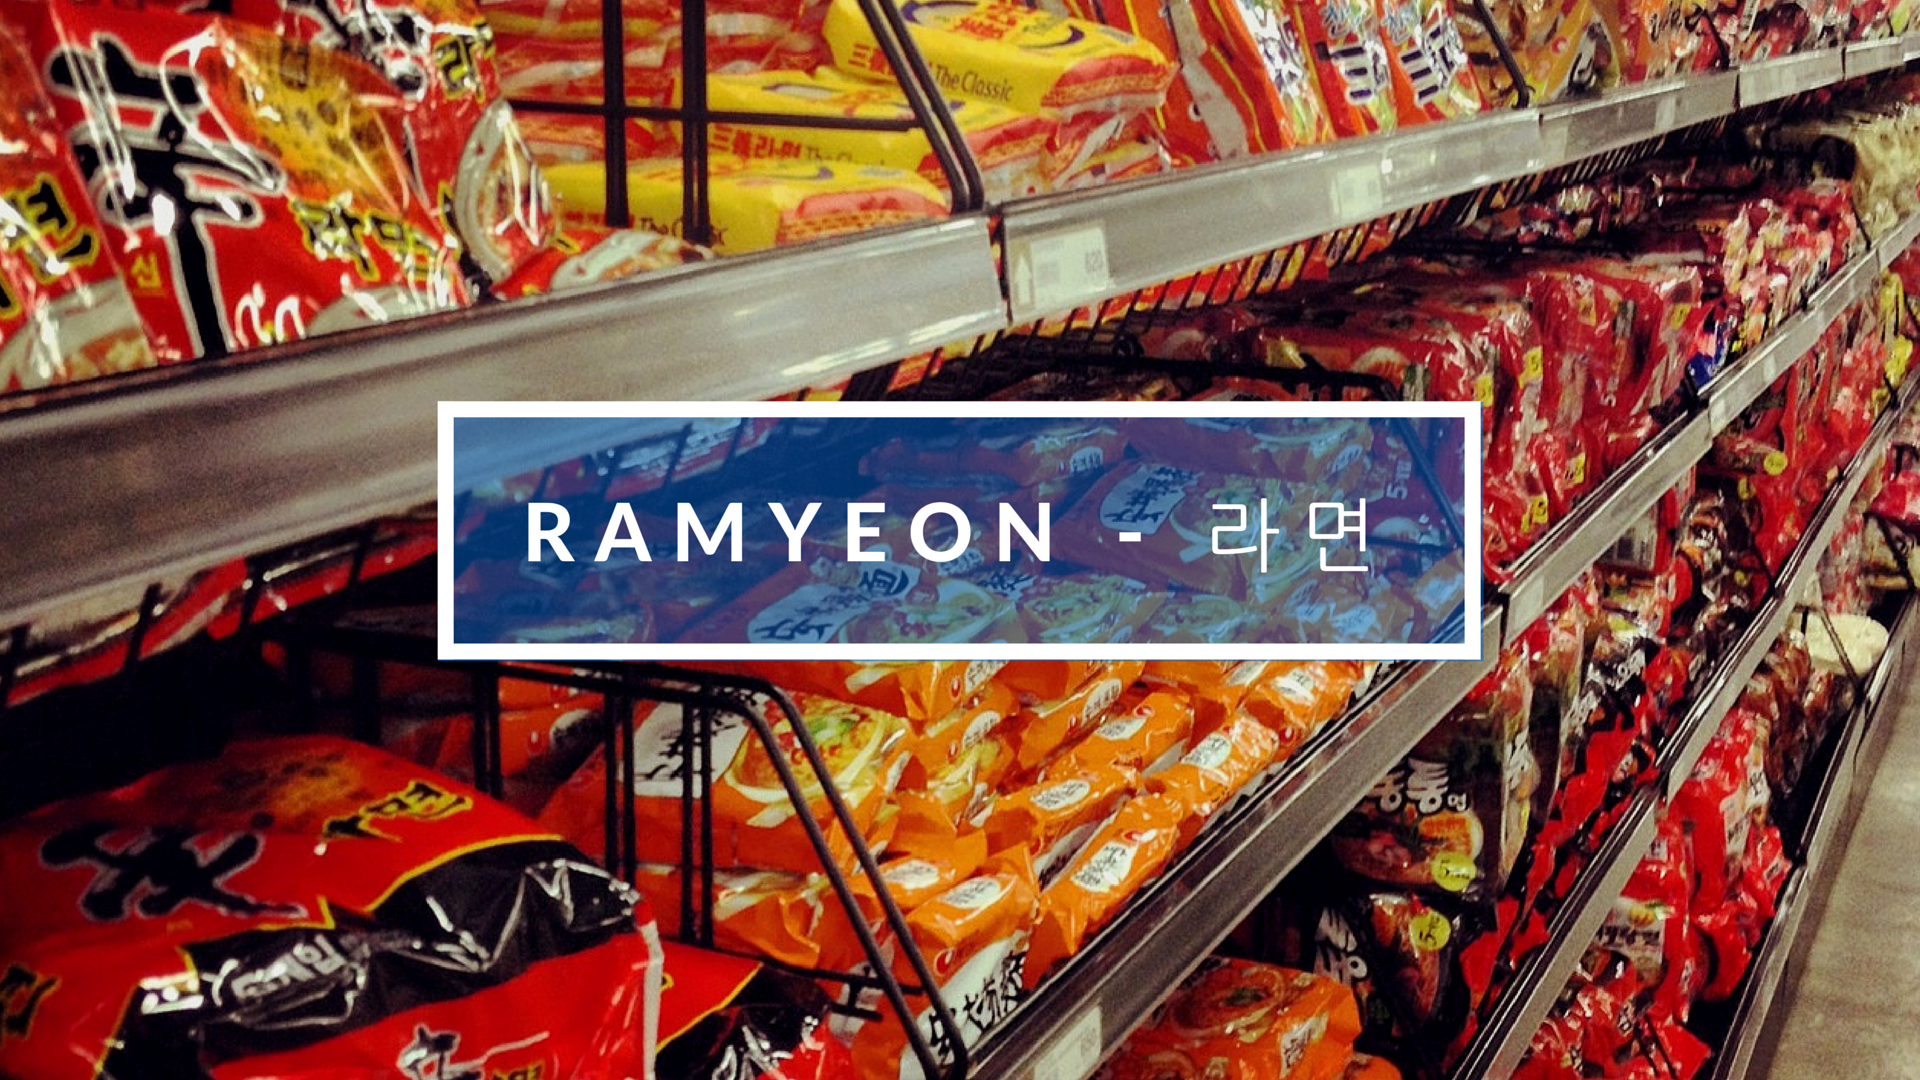 For the love of Ramyeon